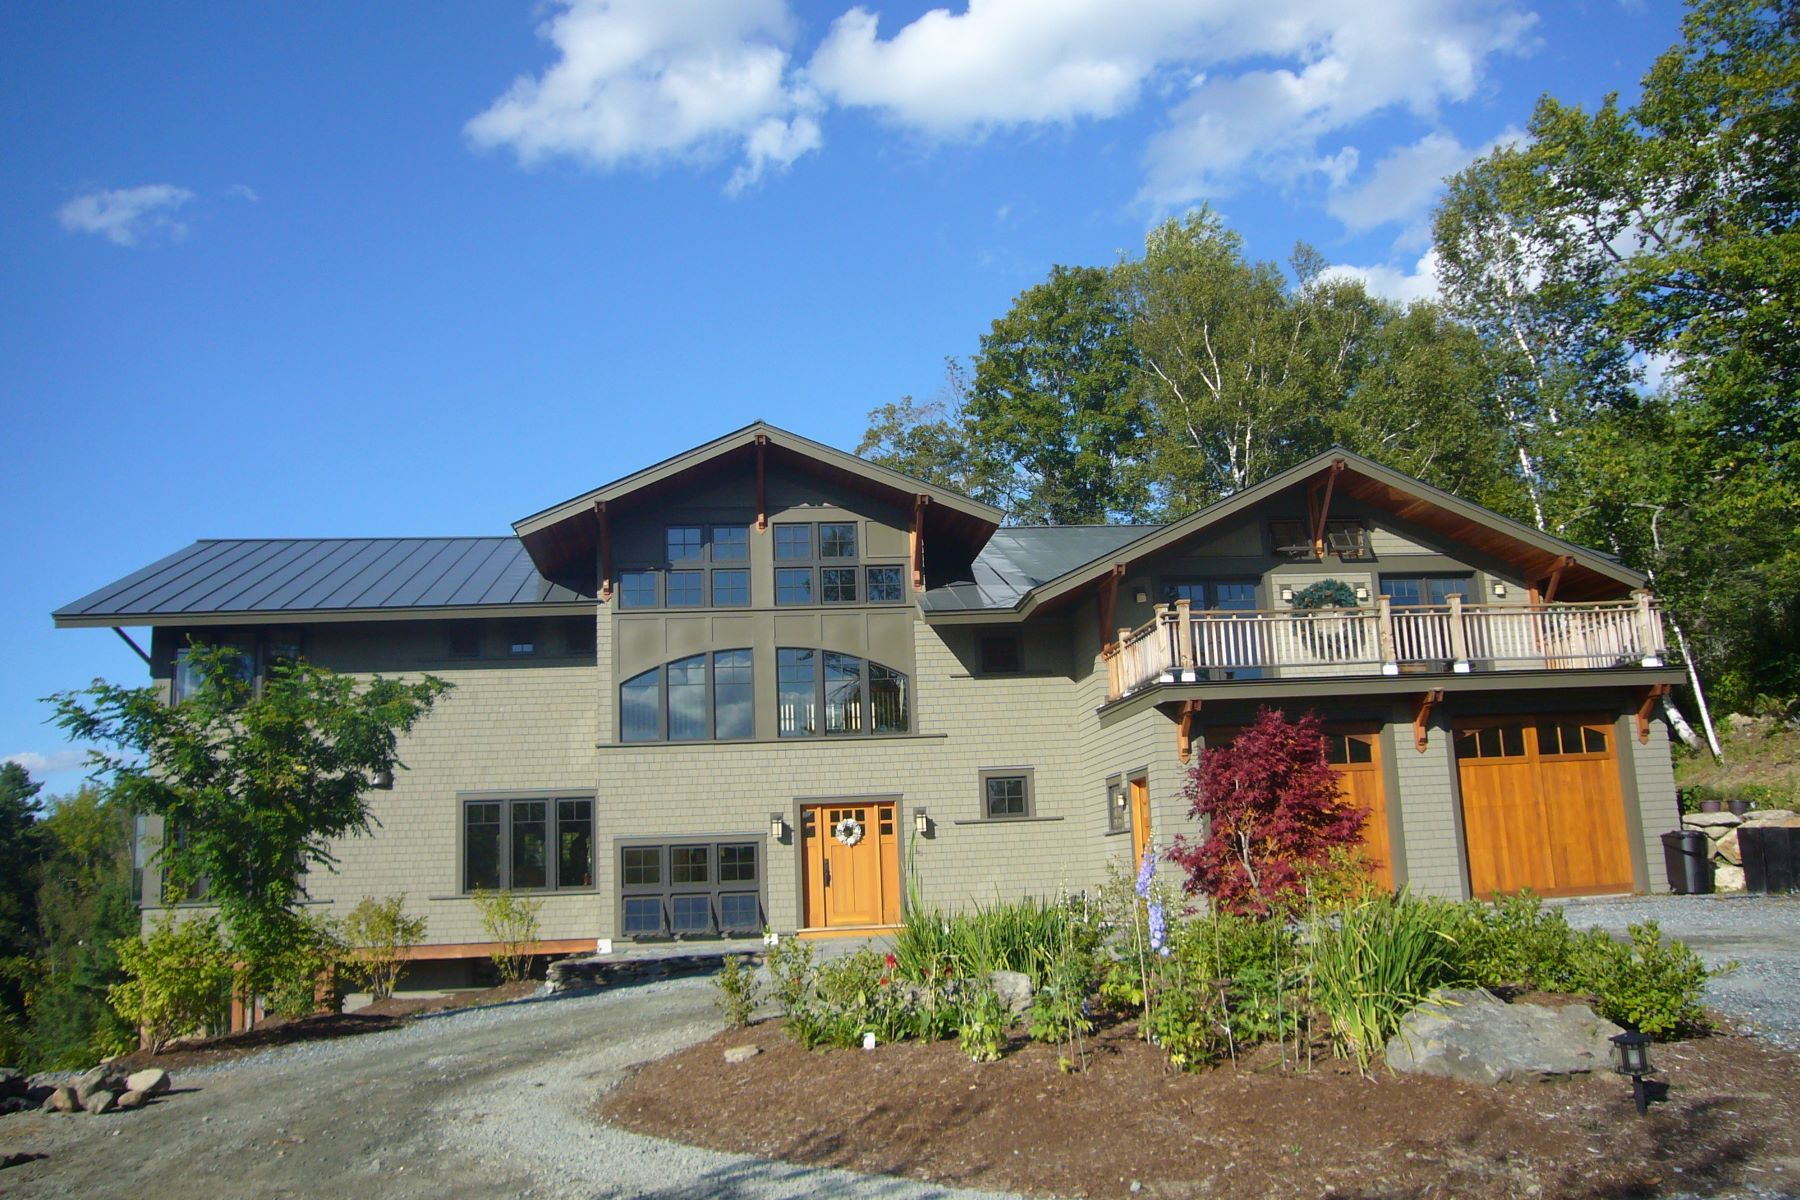 Single Family Home for Sale at Mending Wall Farm 100 Highbridge, Lyme, New Hampshire, 03768 United States